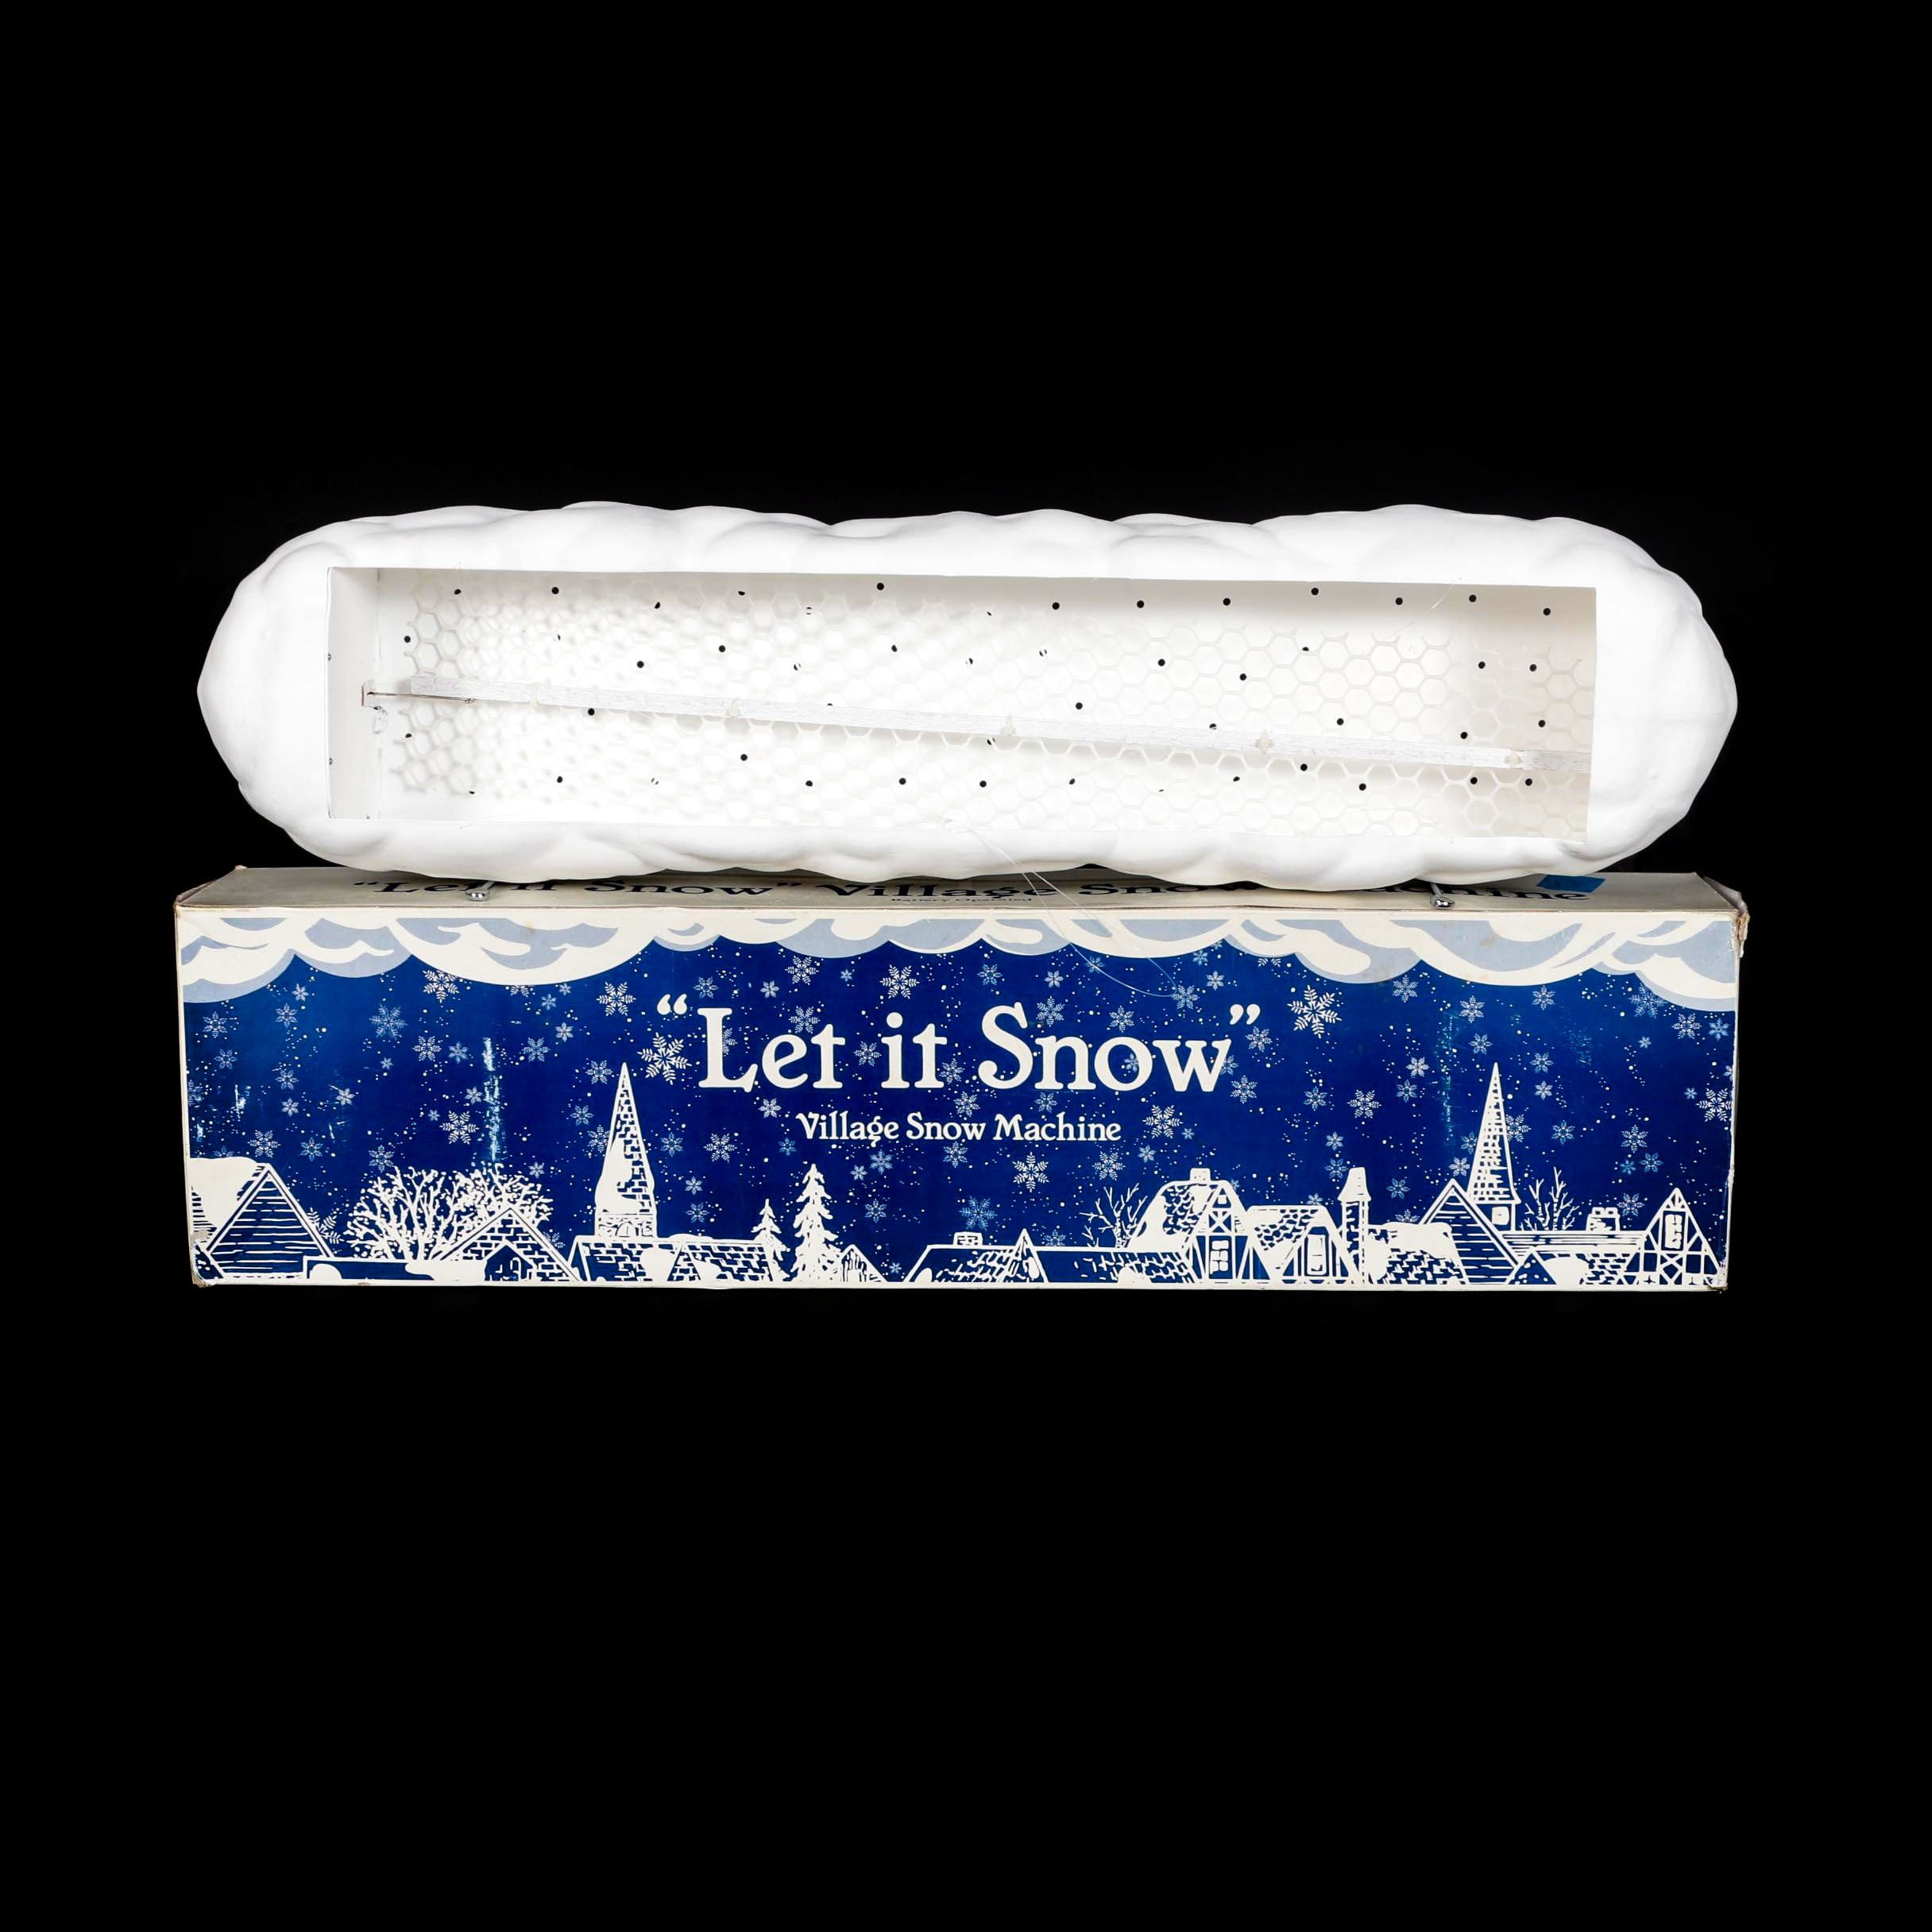 "Dept. 57 Village Snow Machine ""Let it Snow"""